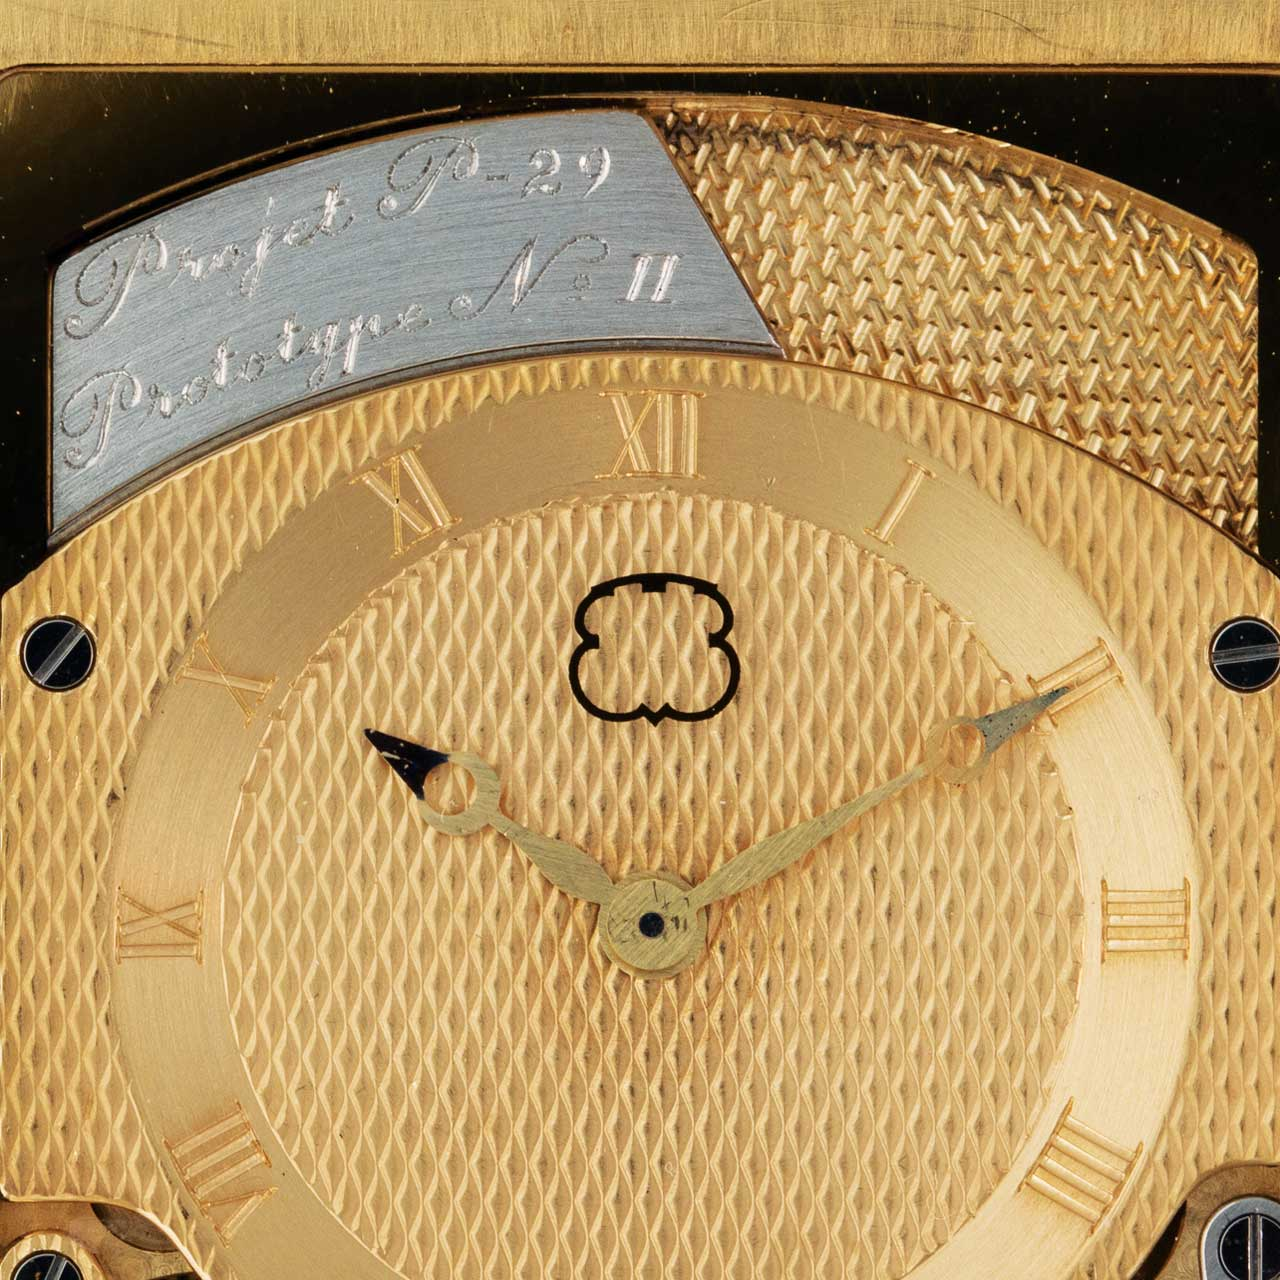 The dial of the Beyner and Grimm prototype sold by Phillips in May 2016 clearly shows the logo of Ebauches SA or, as it later became known, ETA (Picture courtesy of Phillips)